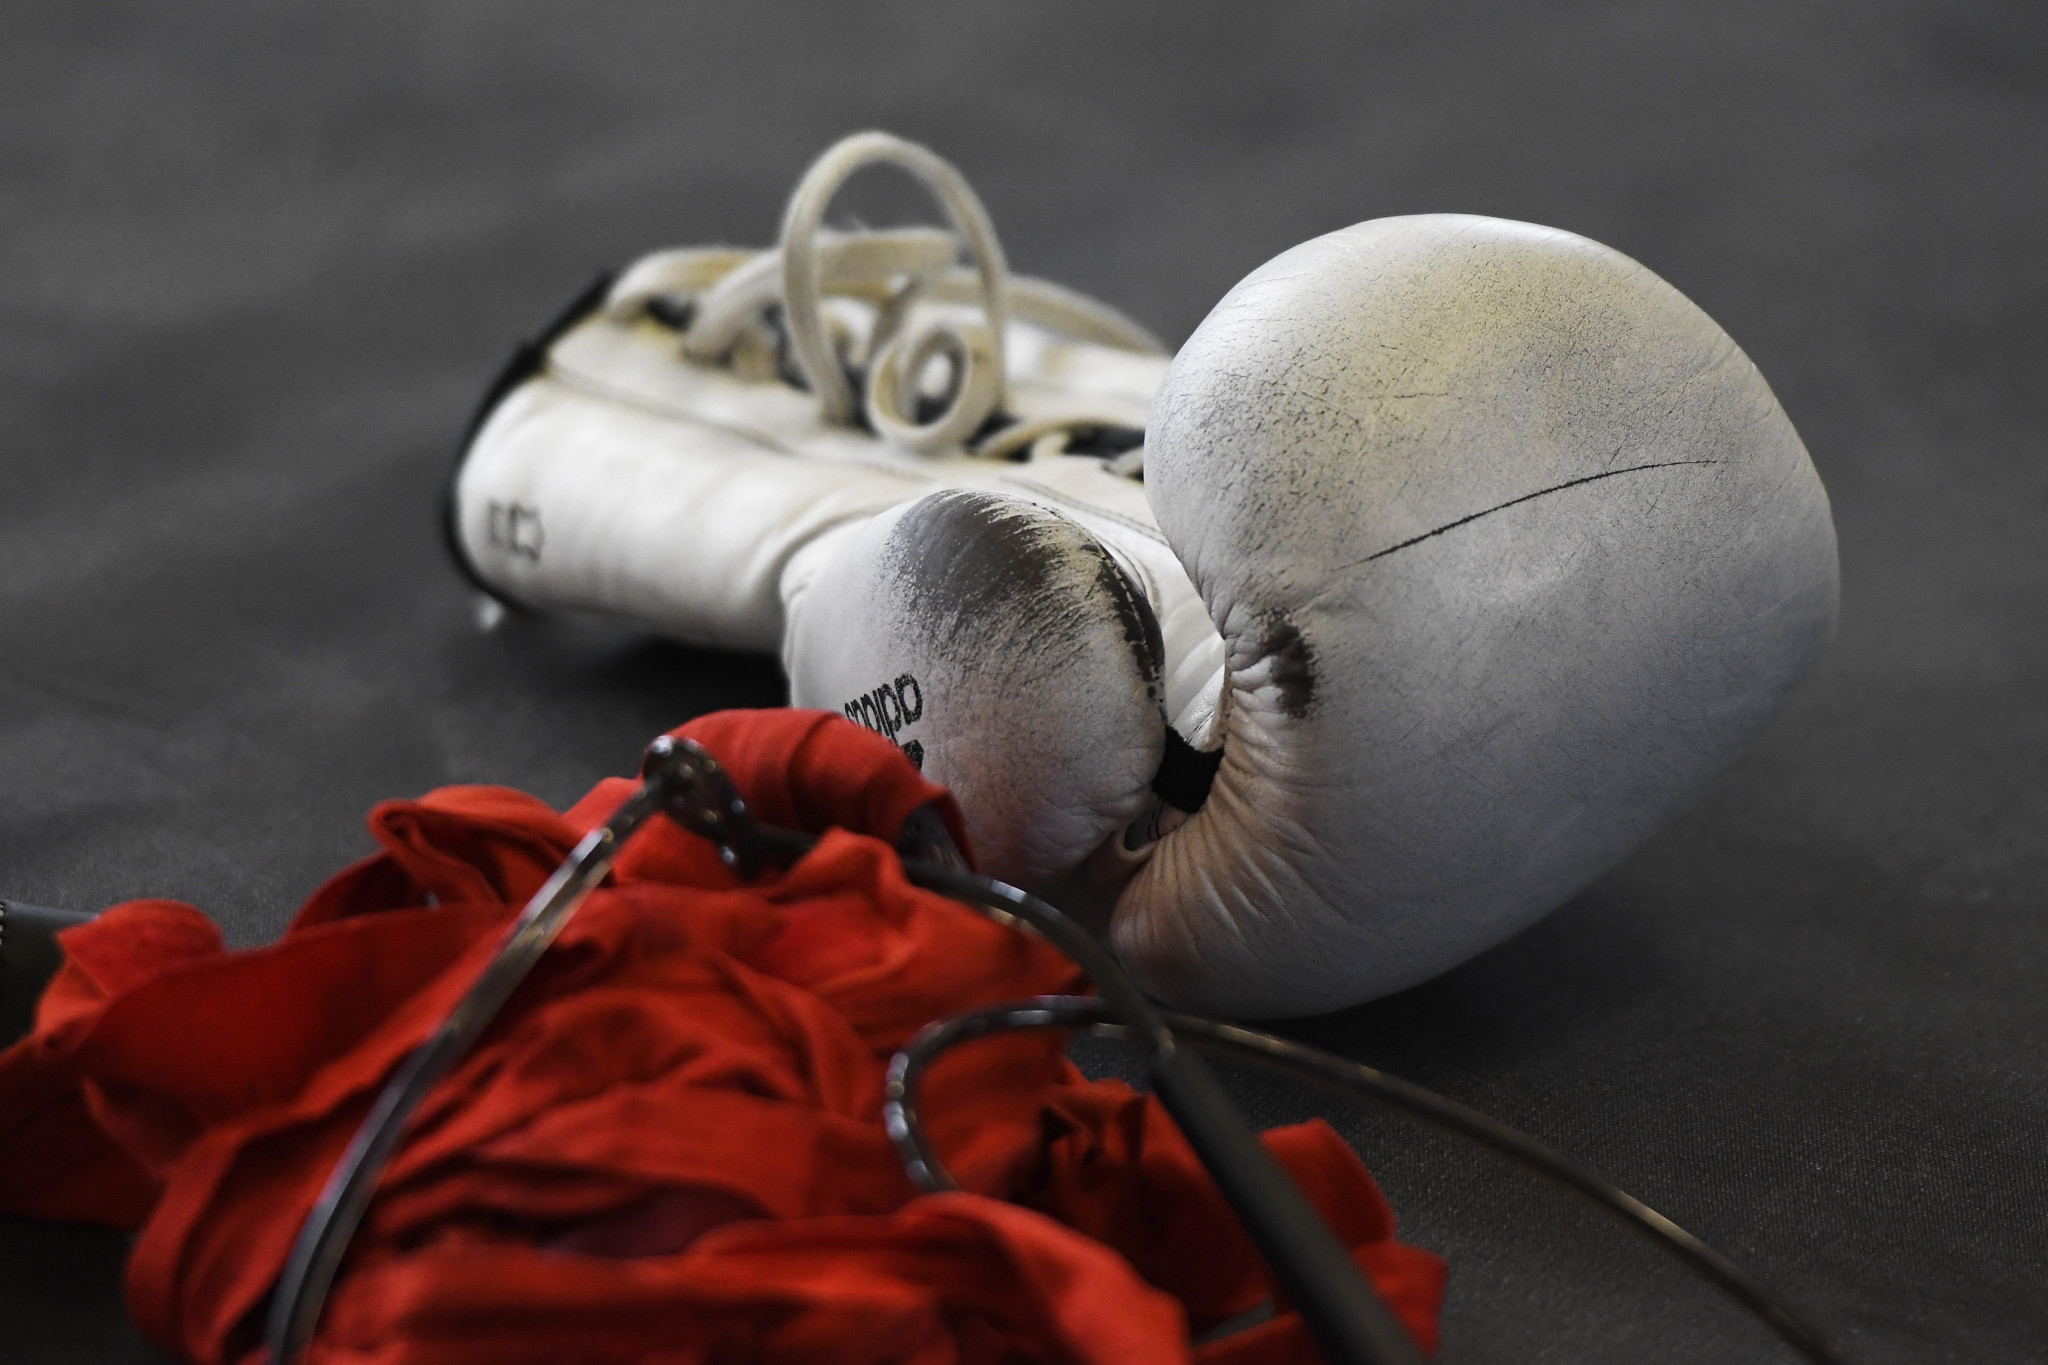 Italian boxer suspended after displaying Nazi tattoos in title fight